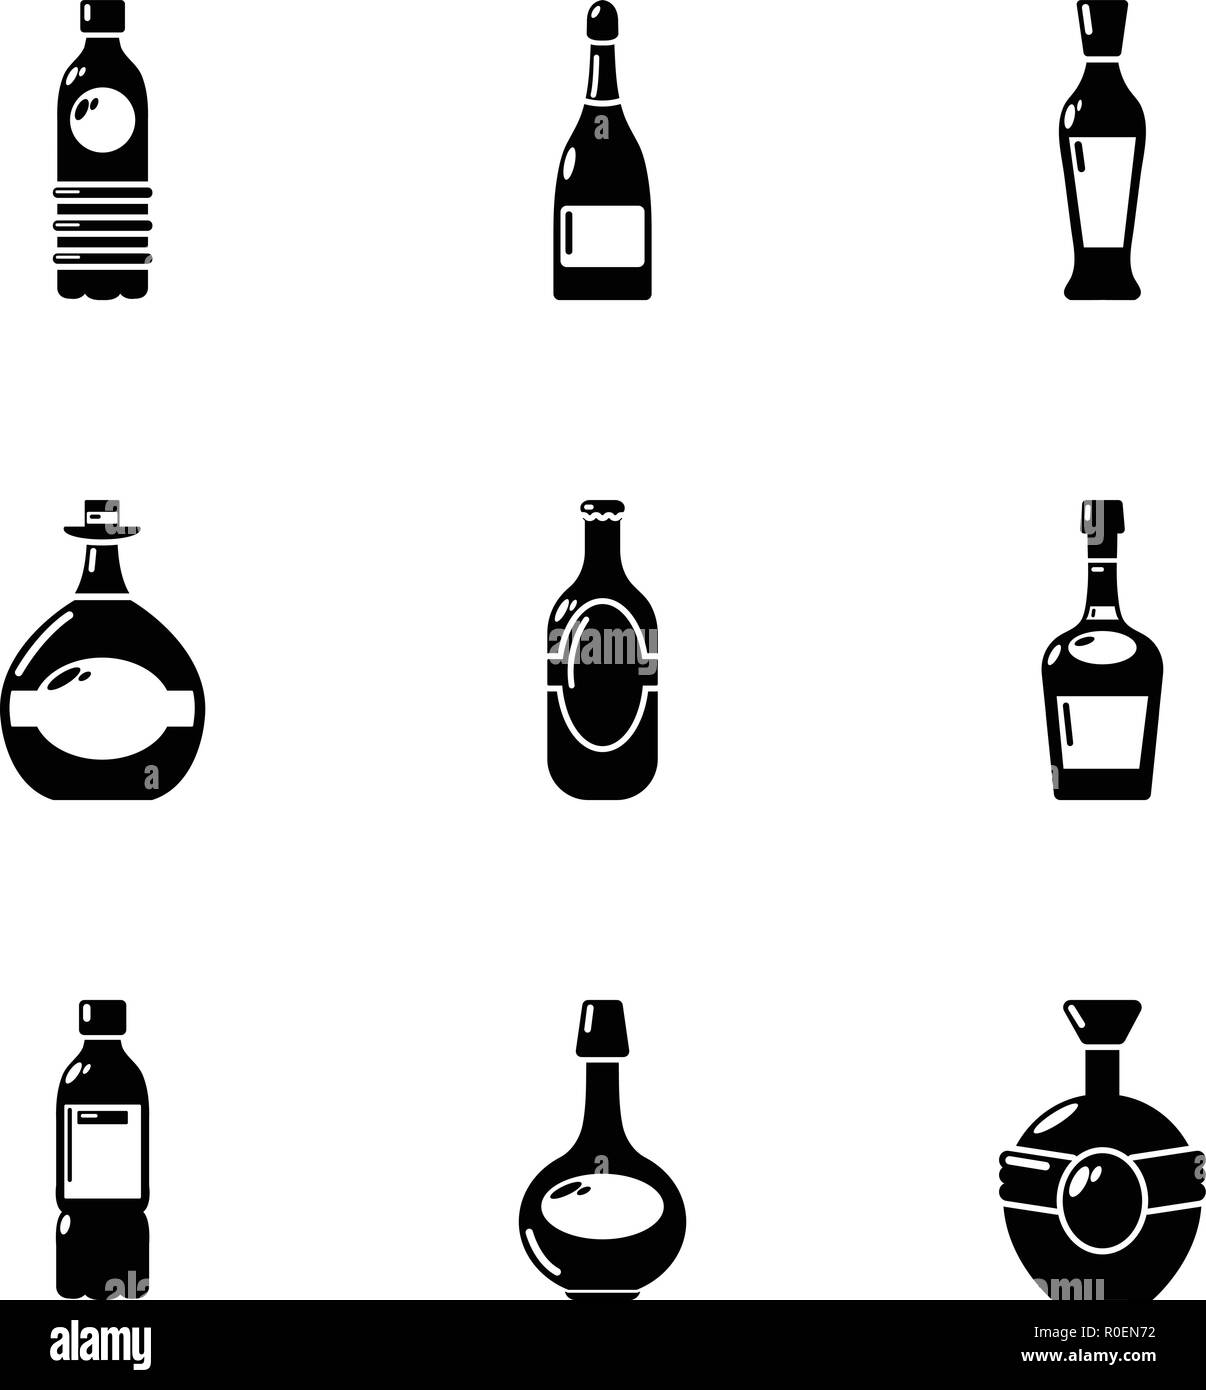 Alcohol dependence icons set, simple style - Stock Image